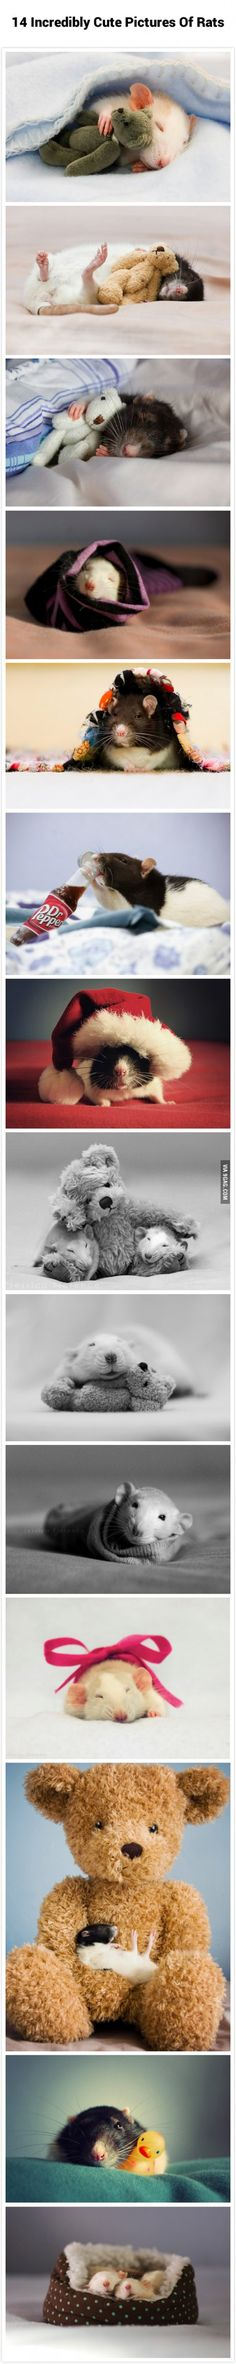 14 Incredibly Cute Pictures Of Rats